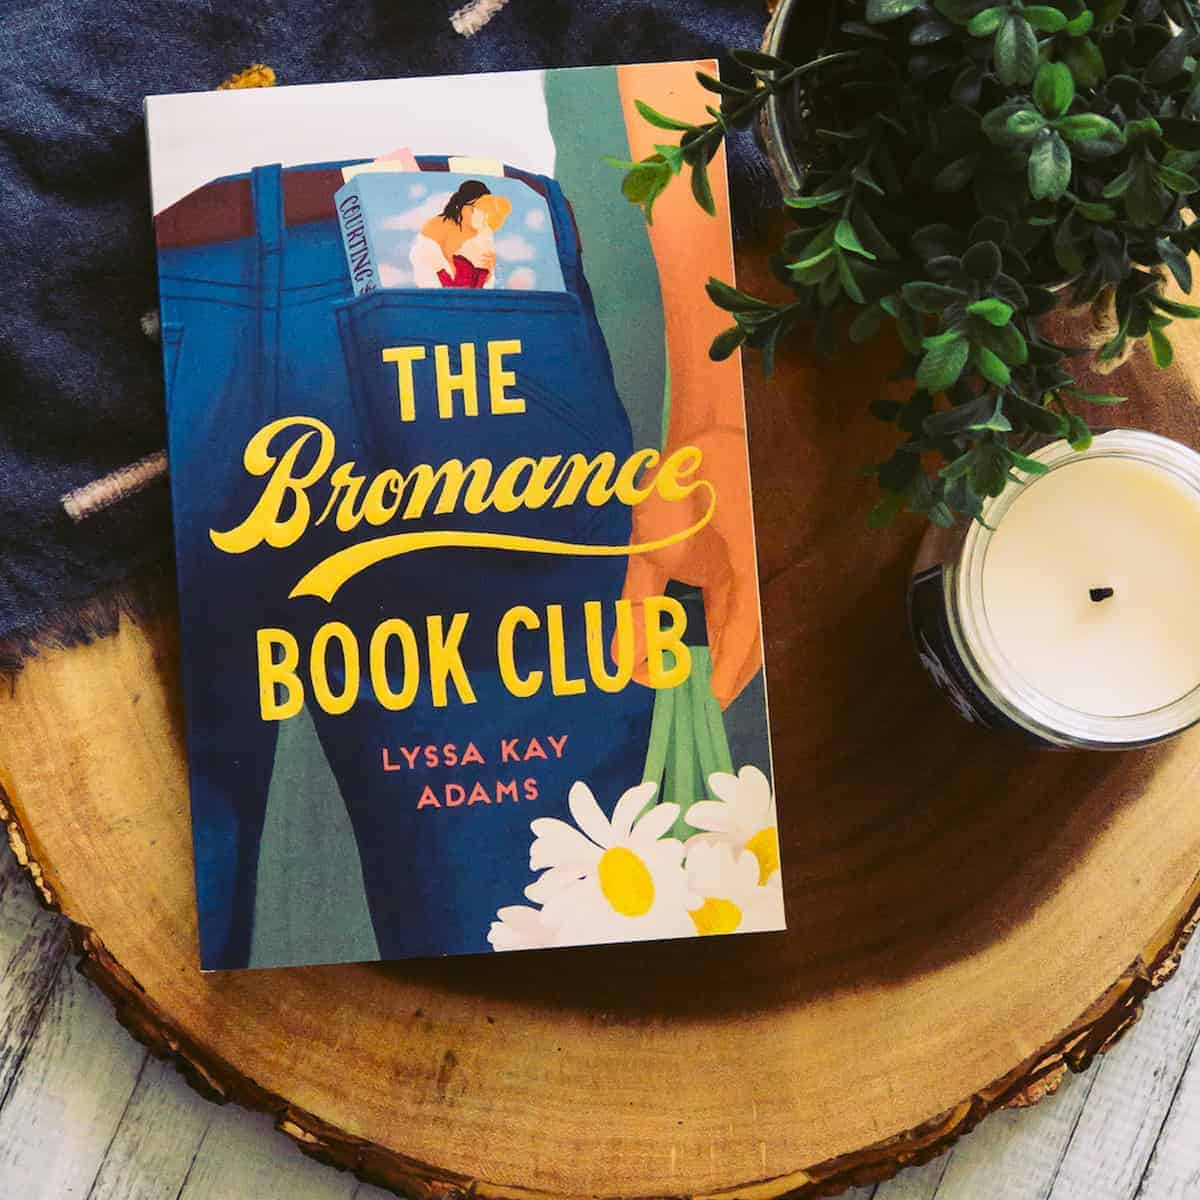 The Bromance Book Club by Lyssa Kay Adams-featured